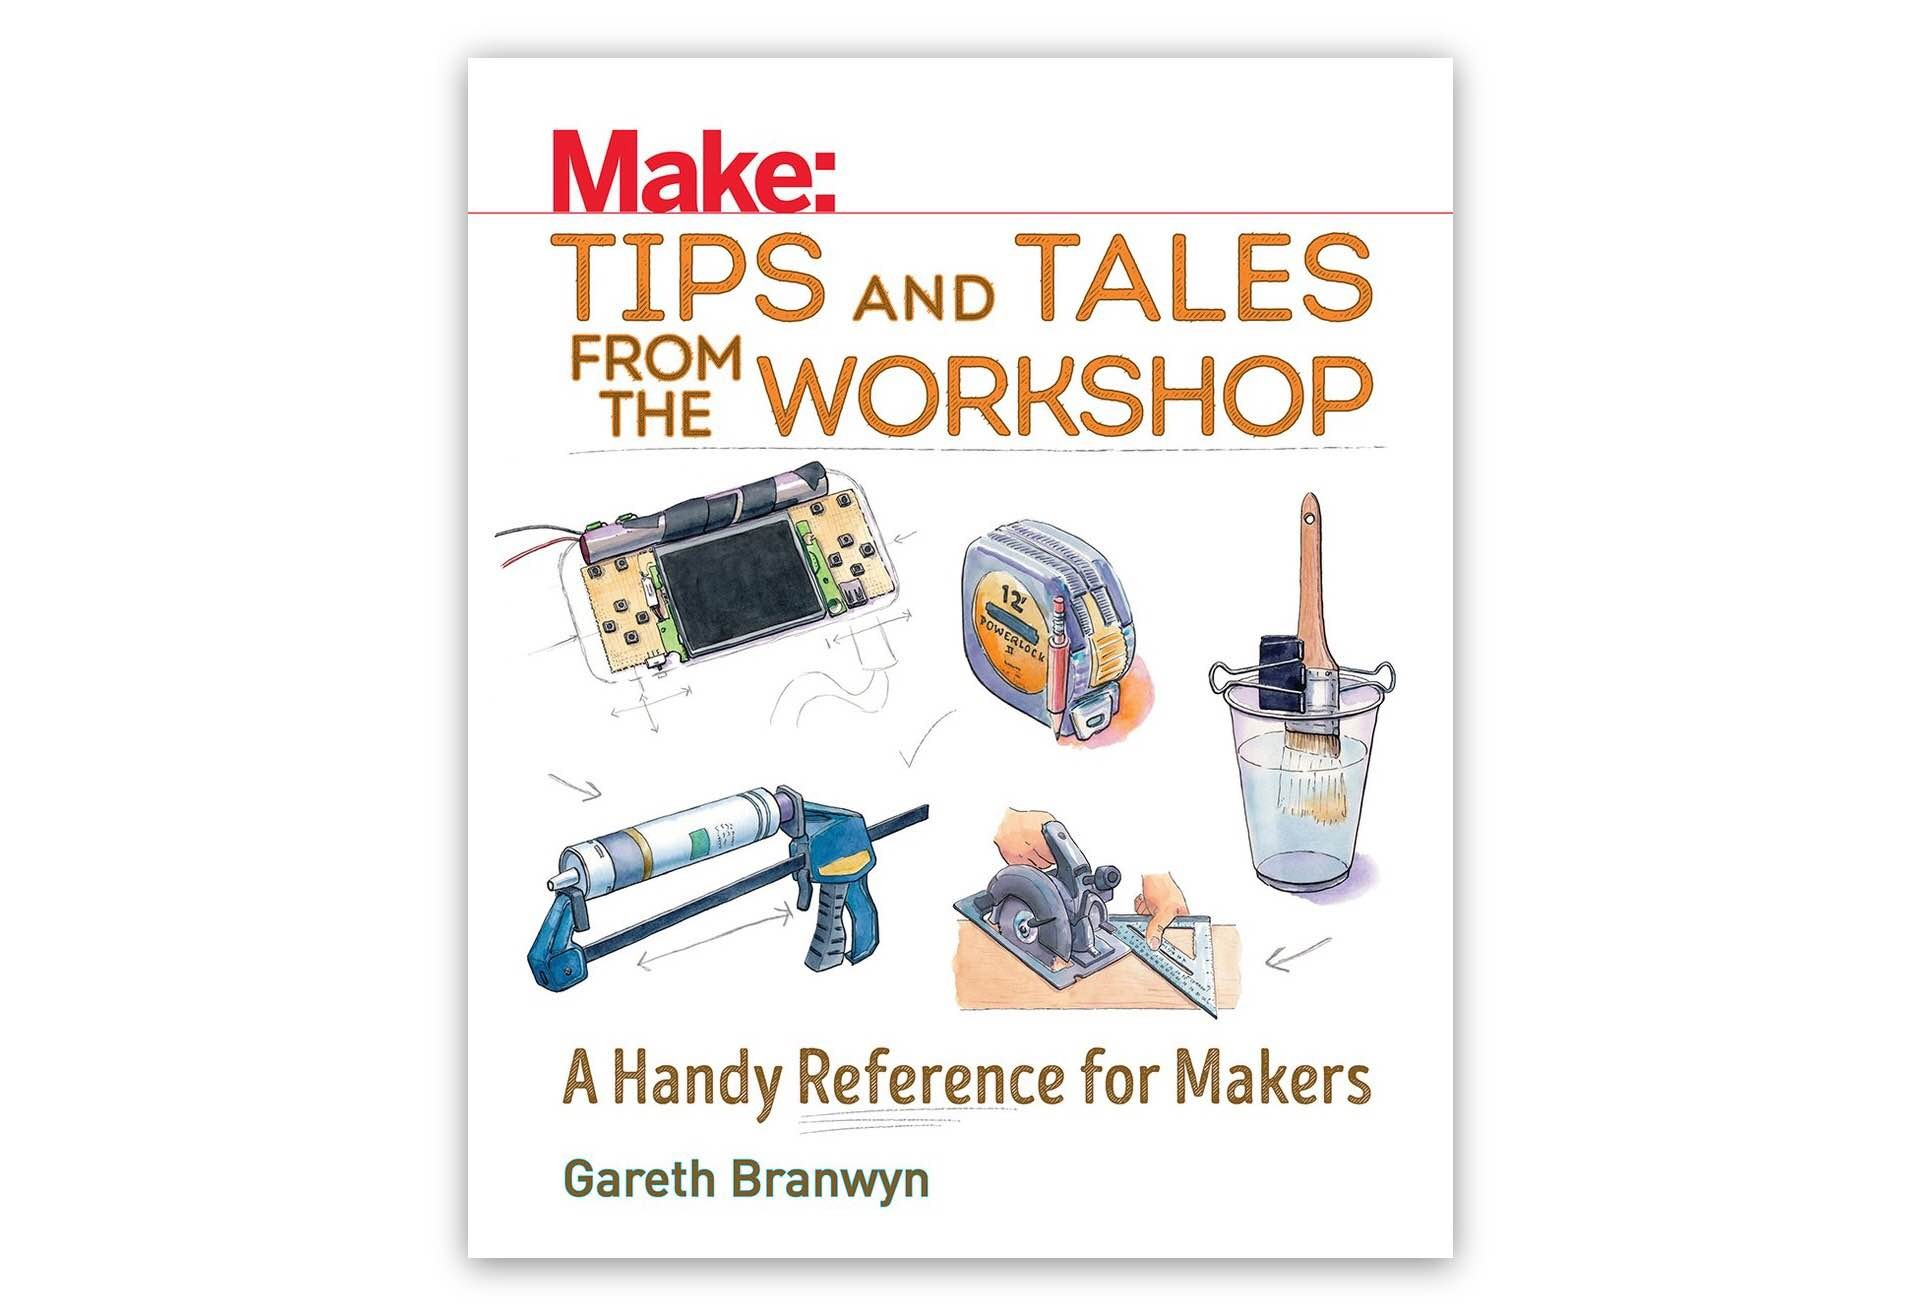 Make: Tips and Tales from the Workshop by Gareth Branwyn. ($17 paperback)